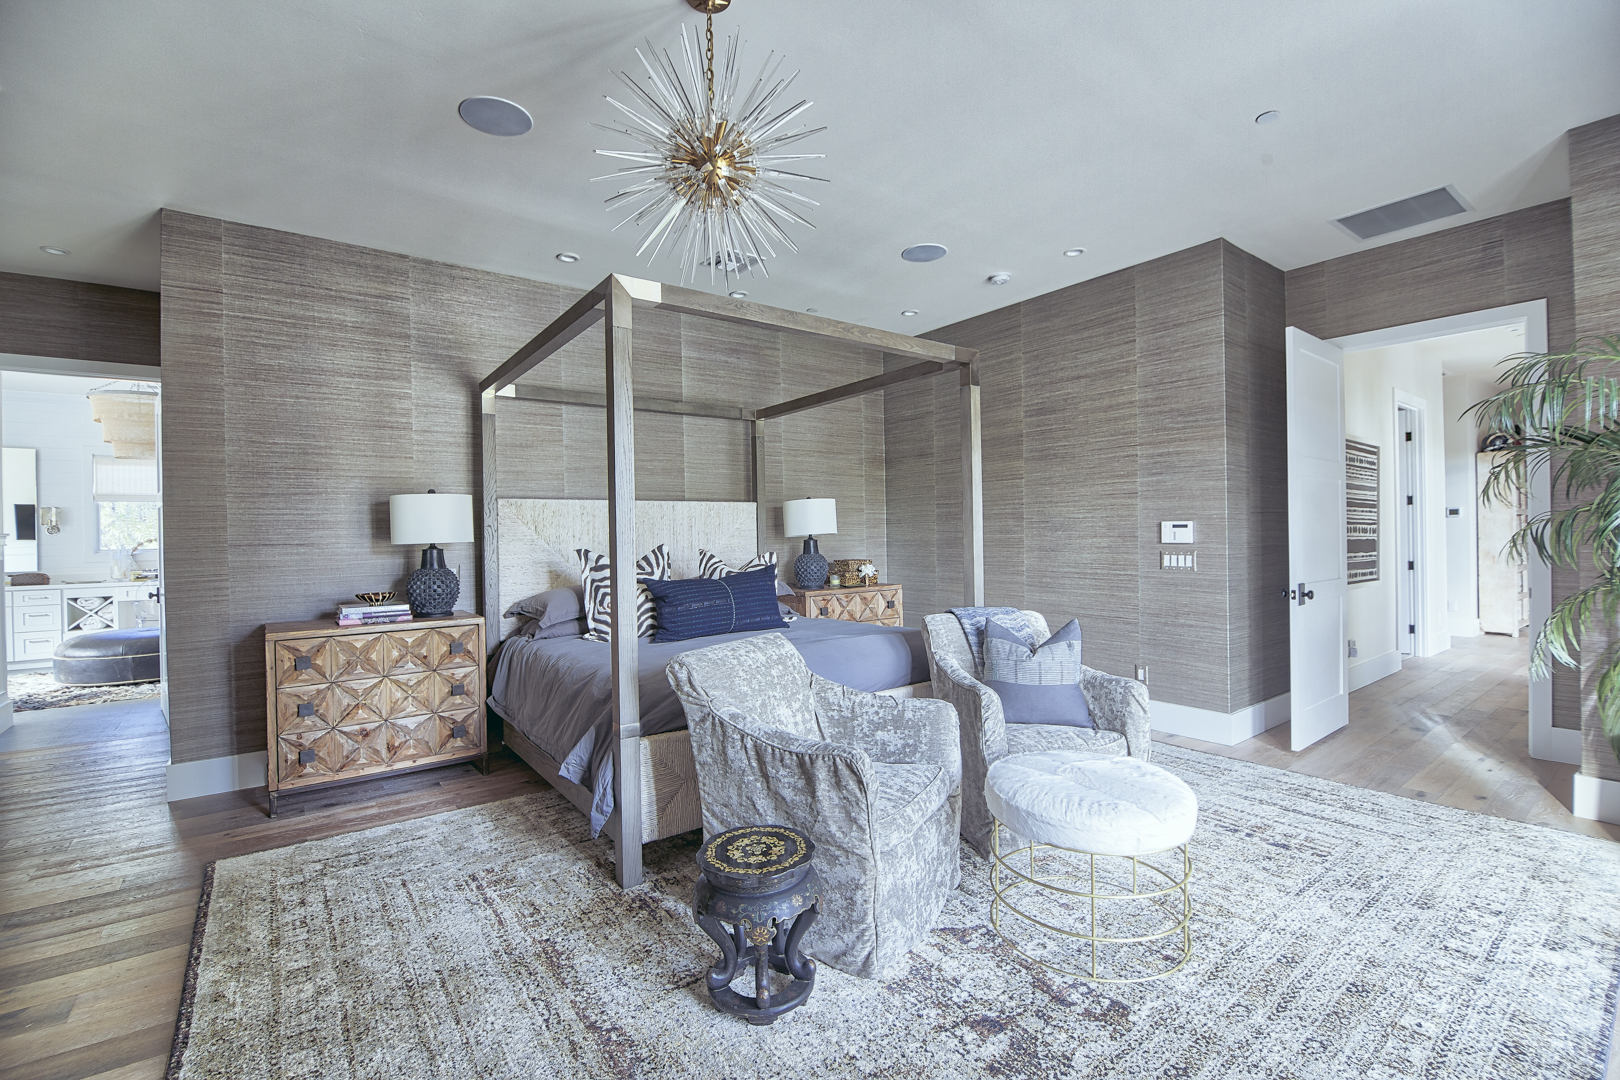 Bungalow Furniture & Accessories - Scottsdale, AZ - Master Bedroom